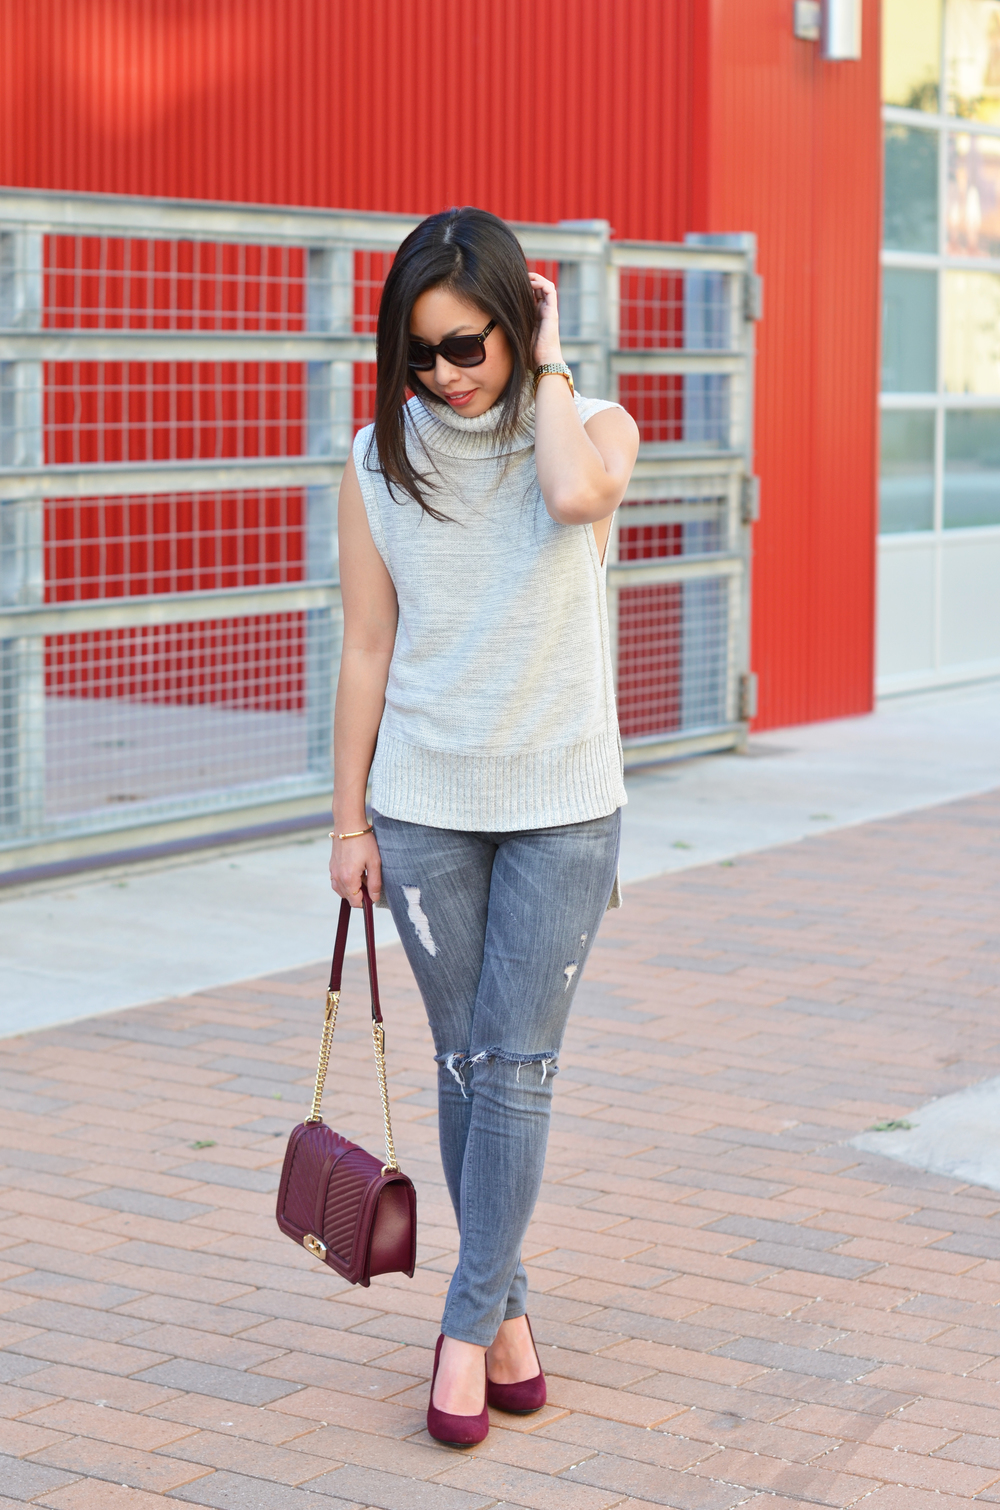 the sleeveless turtleneck & grey jeans -- jannadoan.com